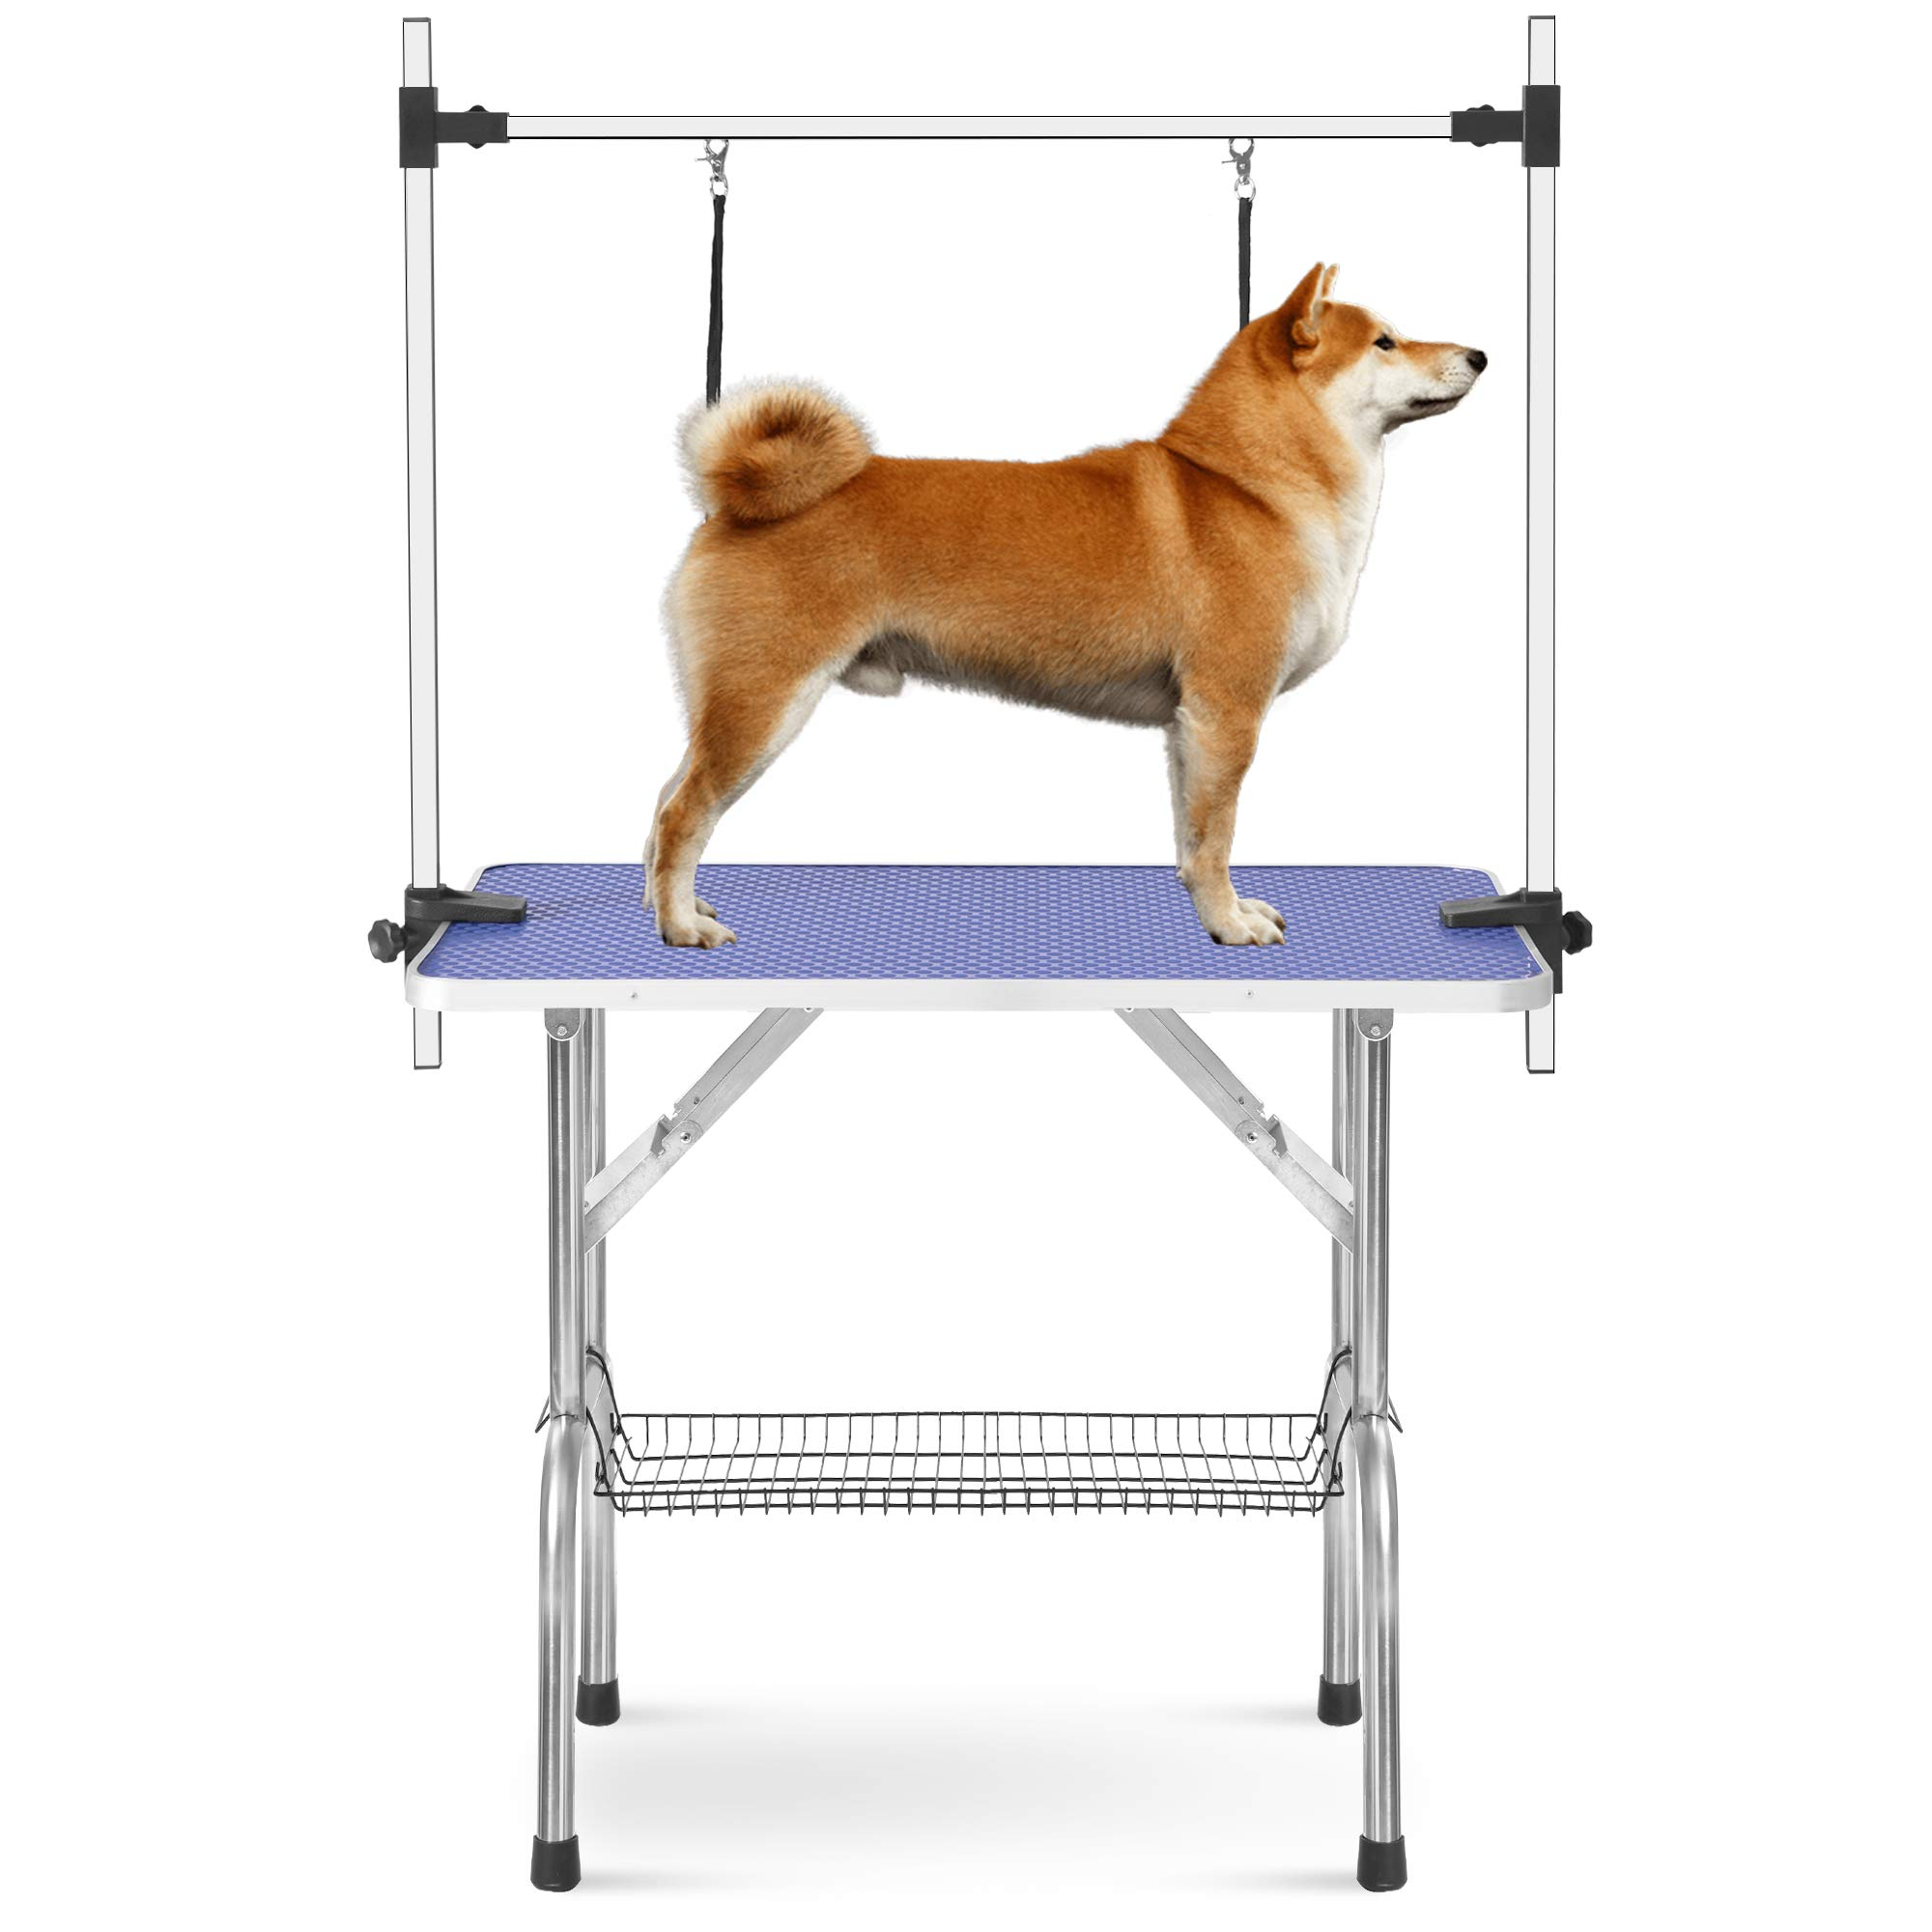 Rhomtree Professional 36'' Adjustable Pet Grooming Table Heavy Duty with Arm & Nosse & Mesh Tray for Large Dog Cat Shower Table Bath Station, Maximum Capacity Up to 330 LBS (36 inch)